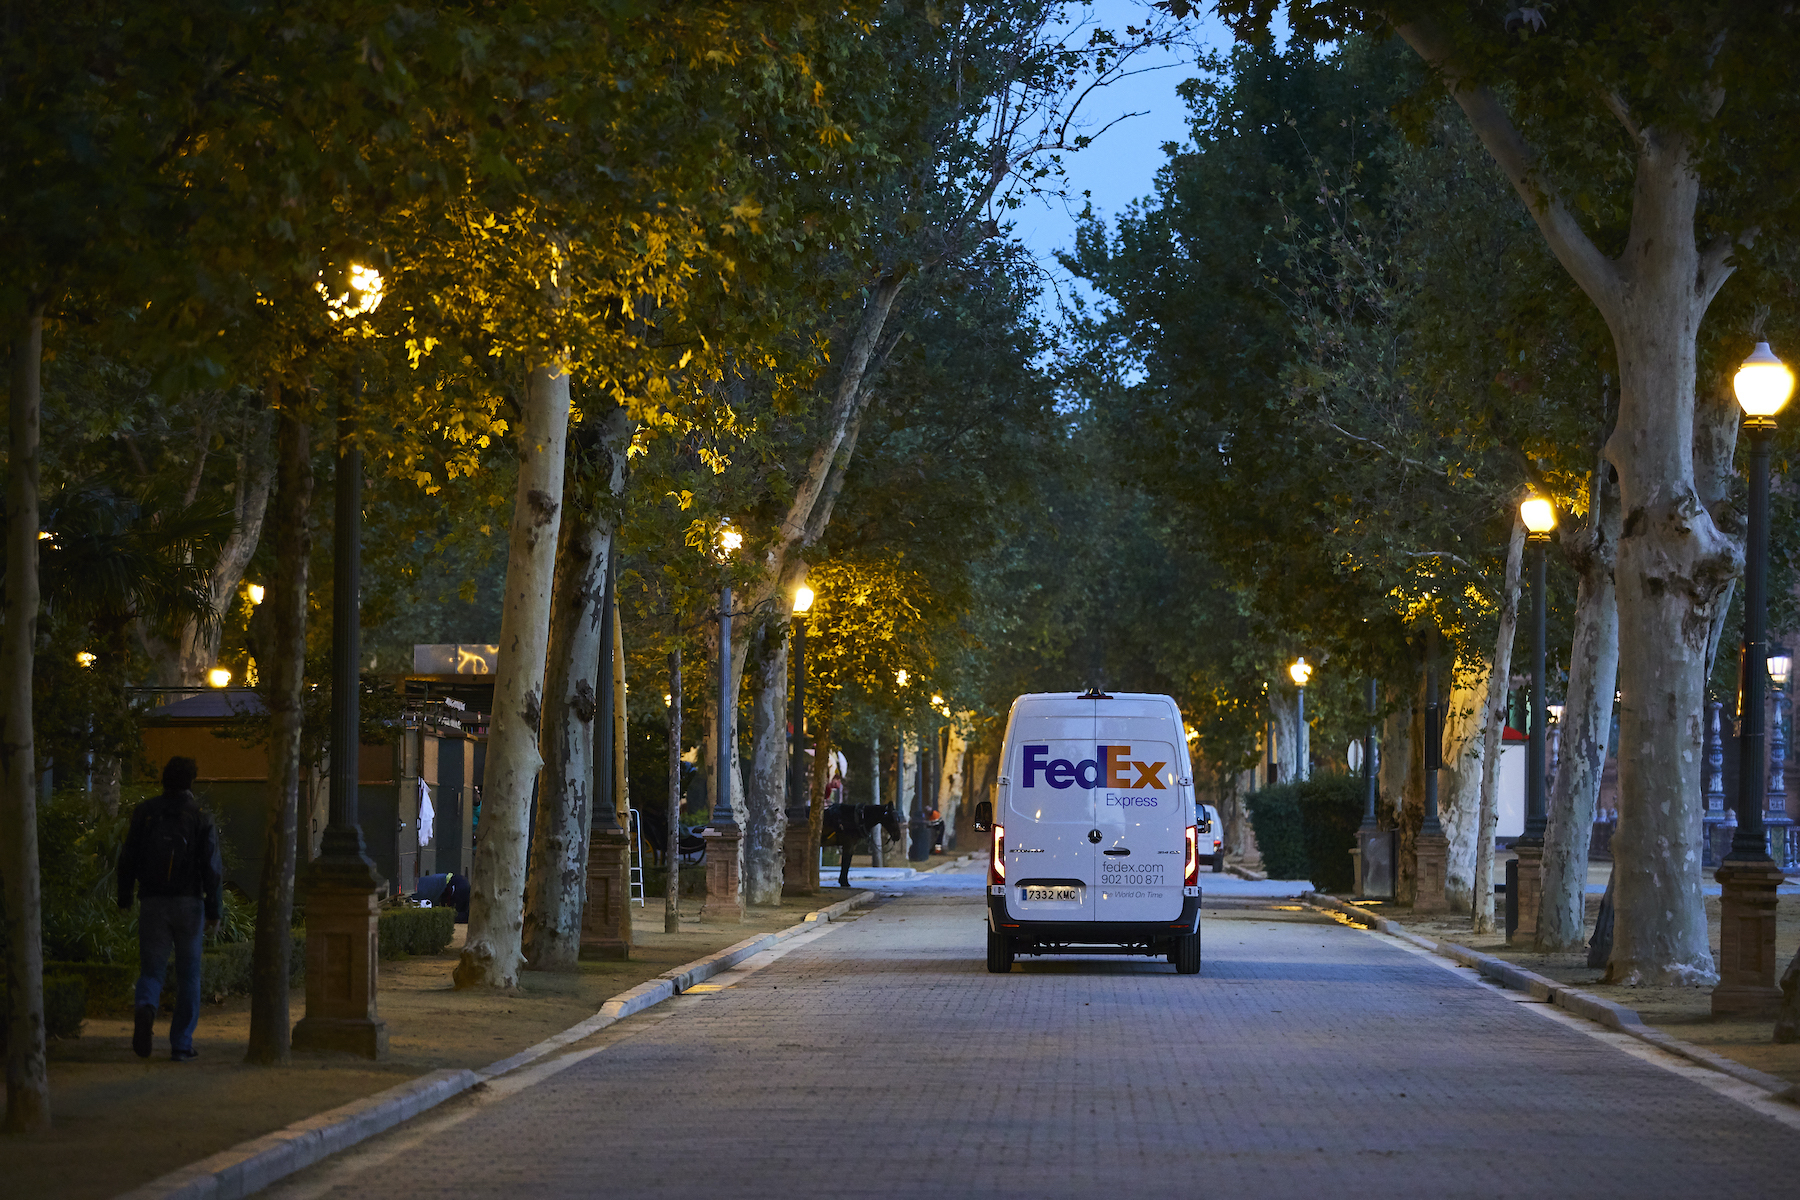 FedEx plans to go Carbon-Neutral by 2040